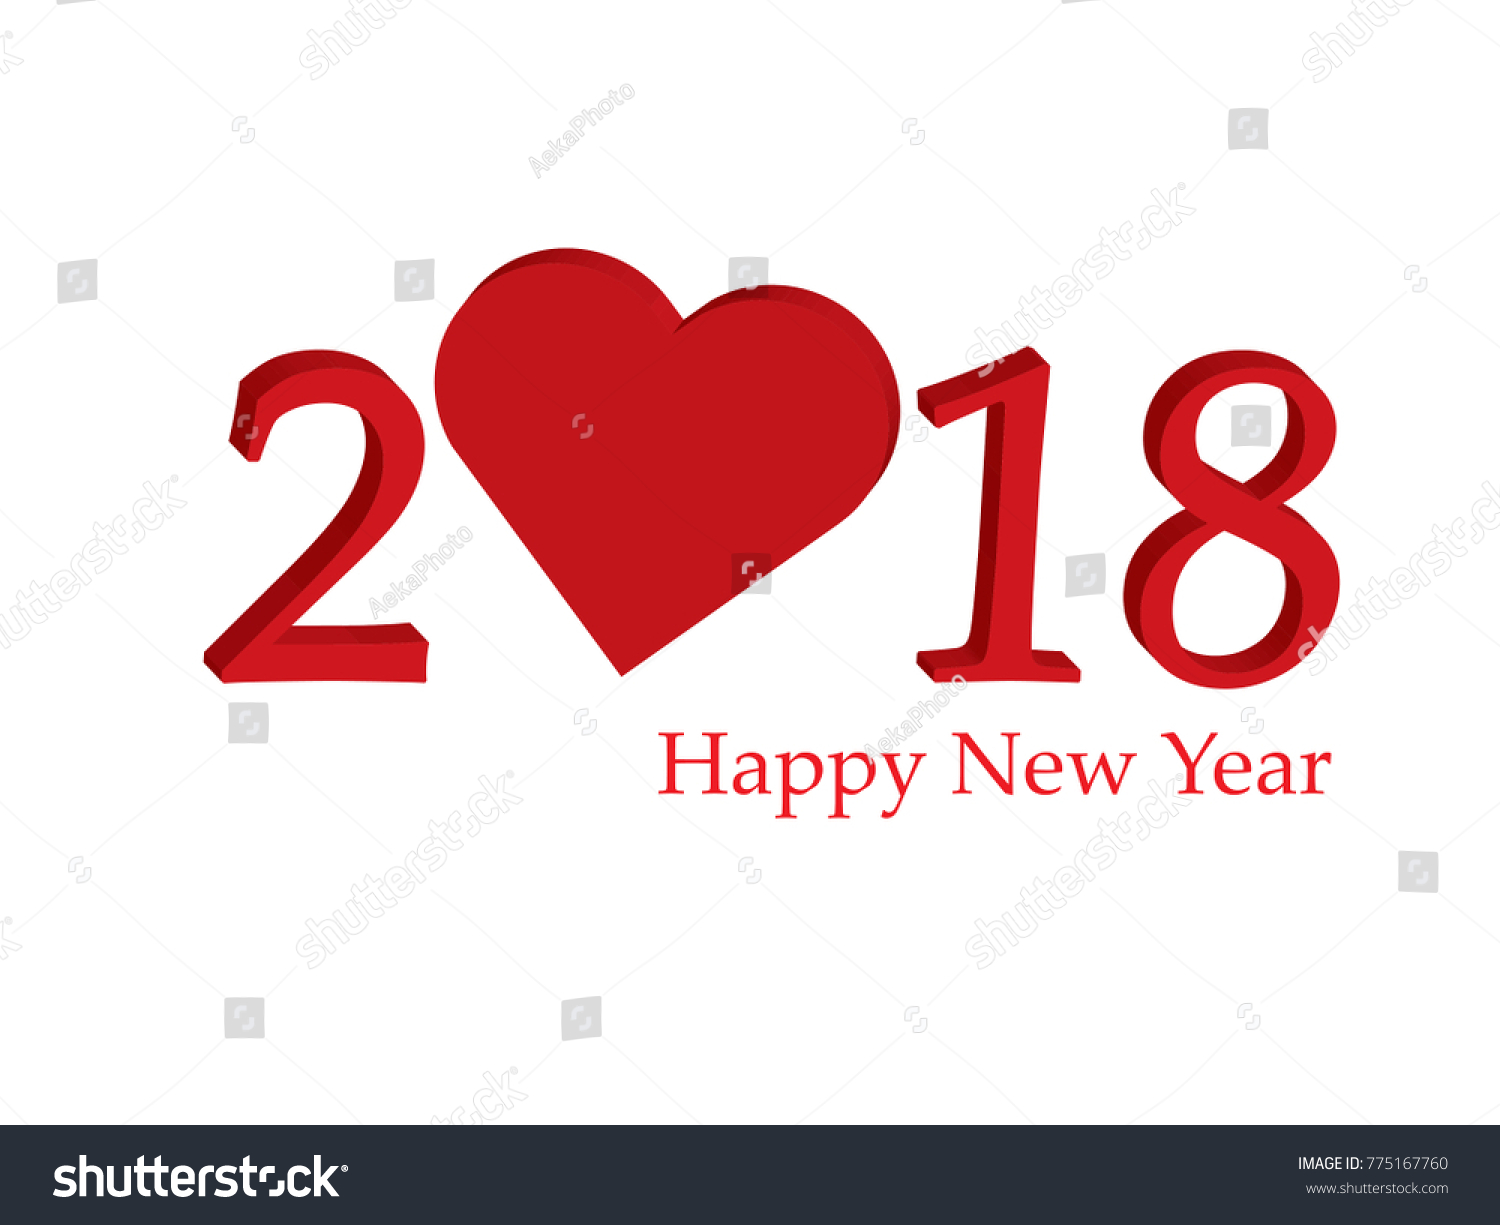 happy new year 2018 with creative love by heart concept isolate on white background for copy